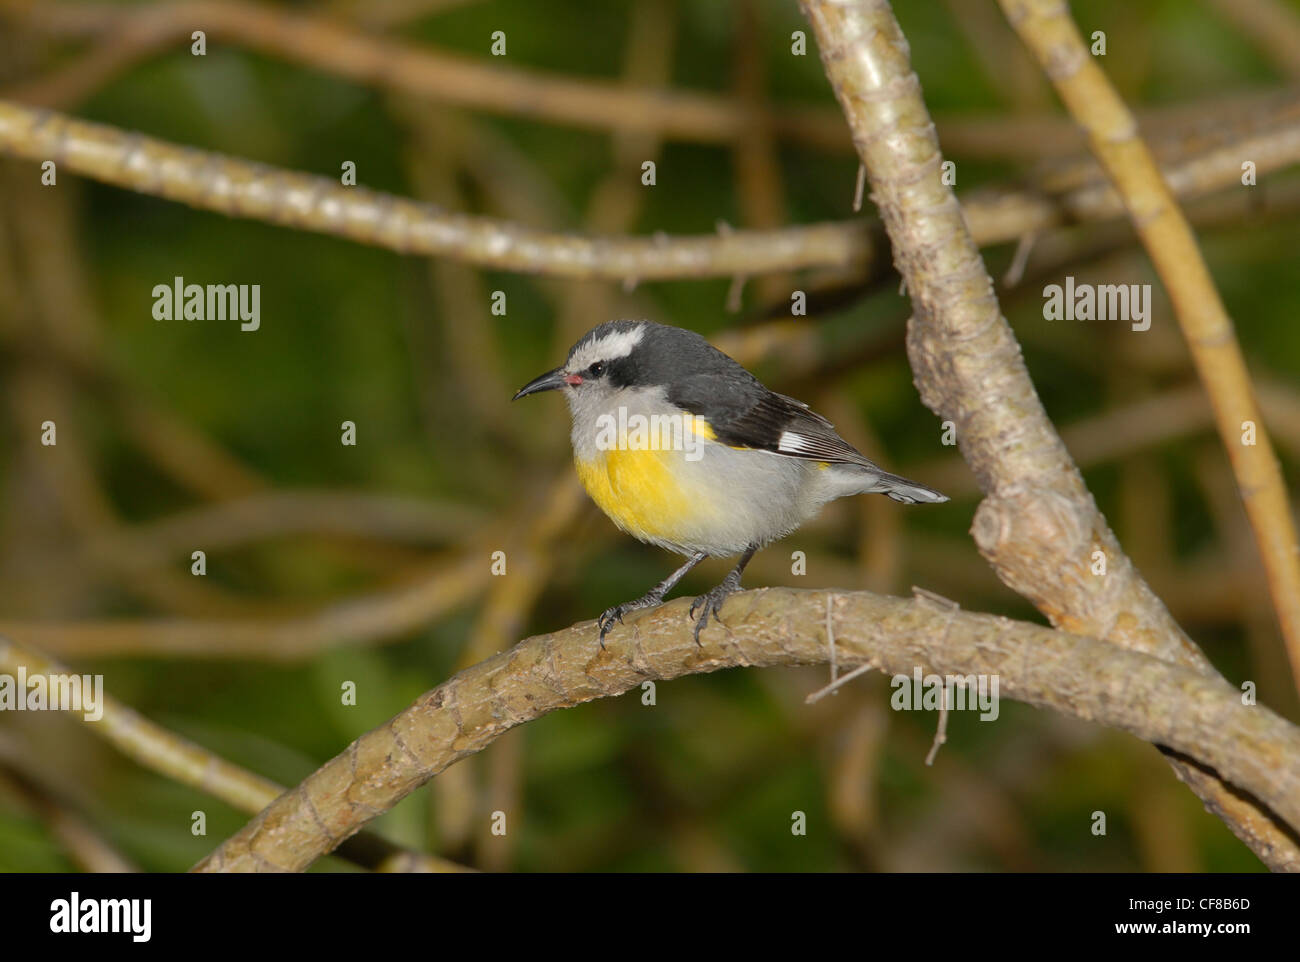 Yellow breasted Passerine bird perched on a branch - Stock Image